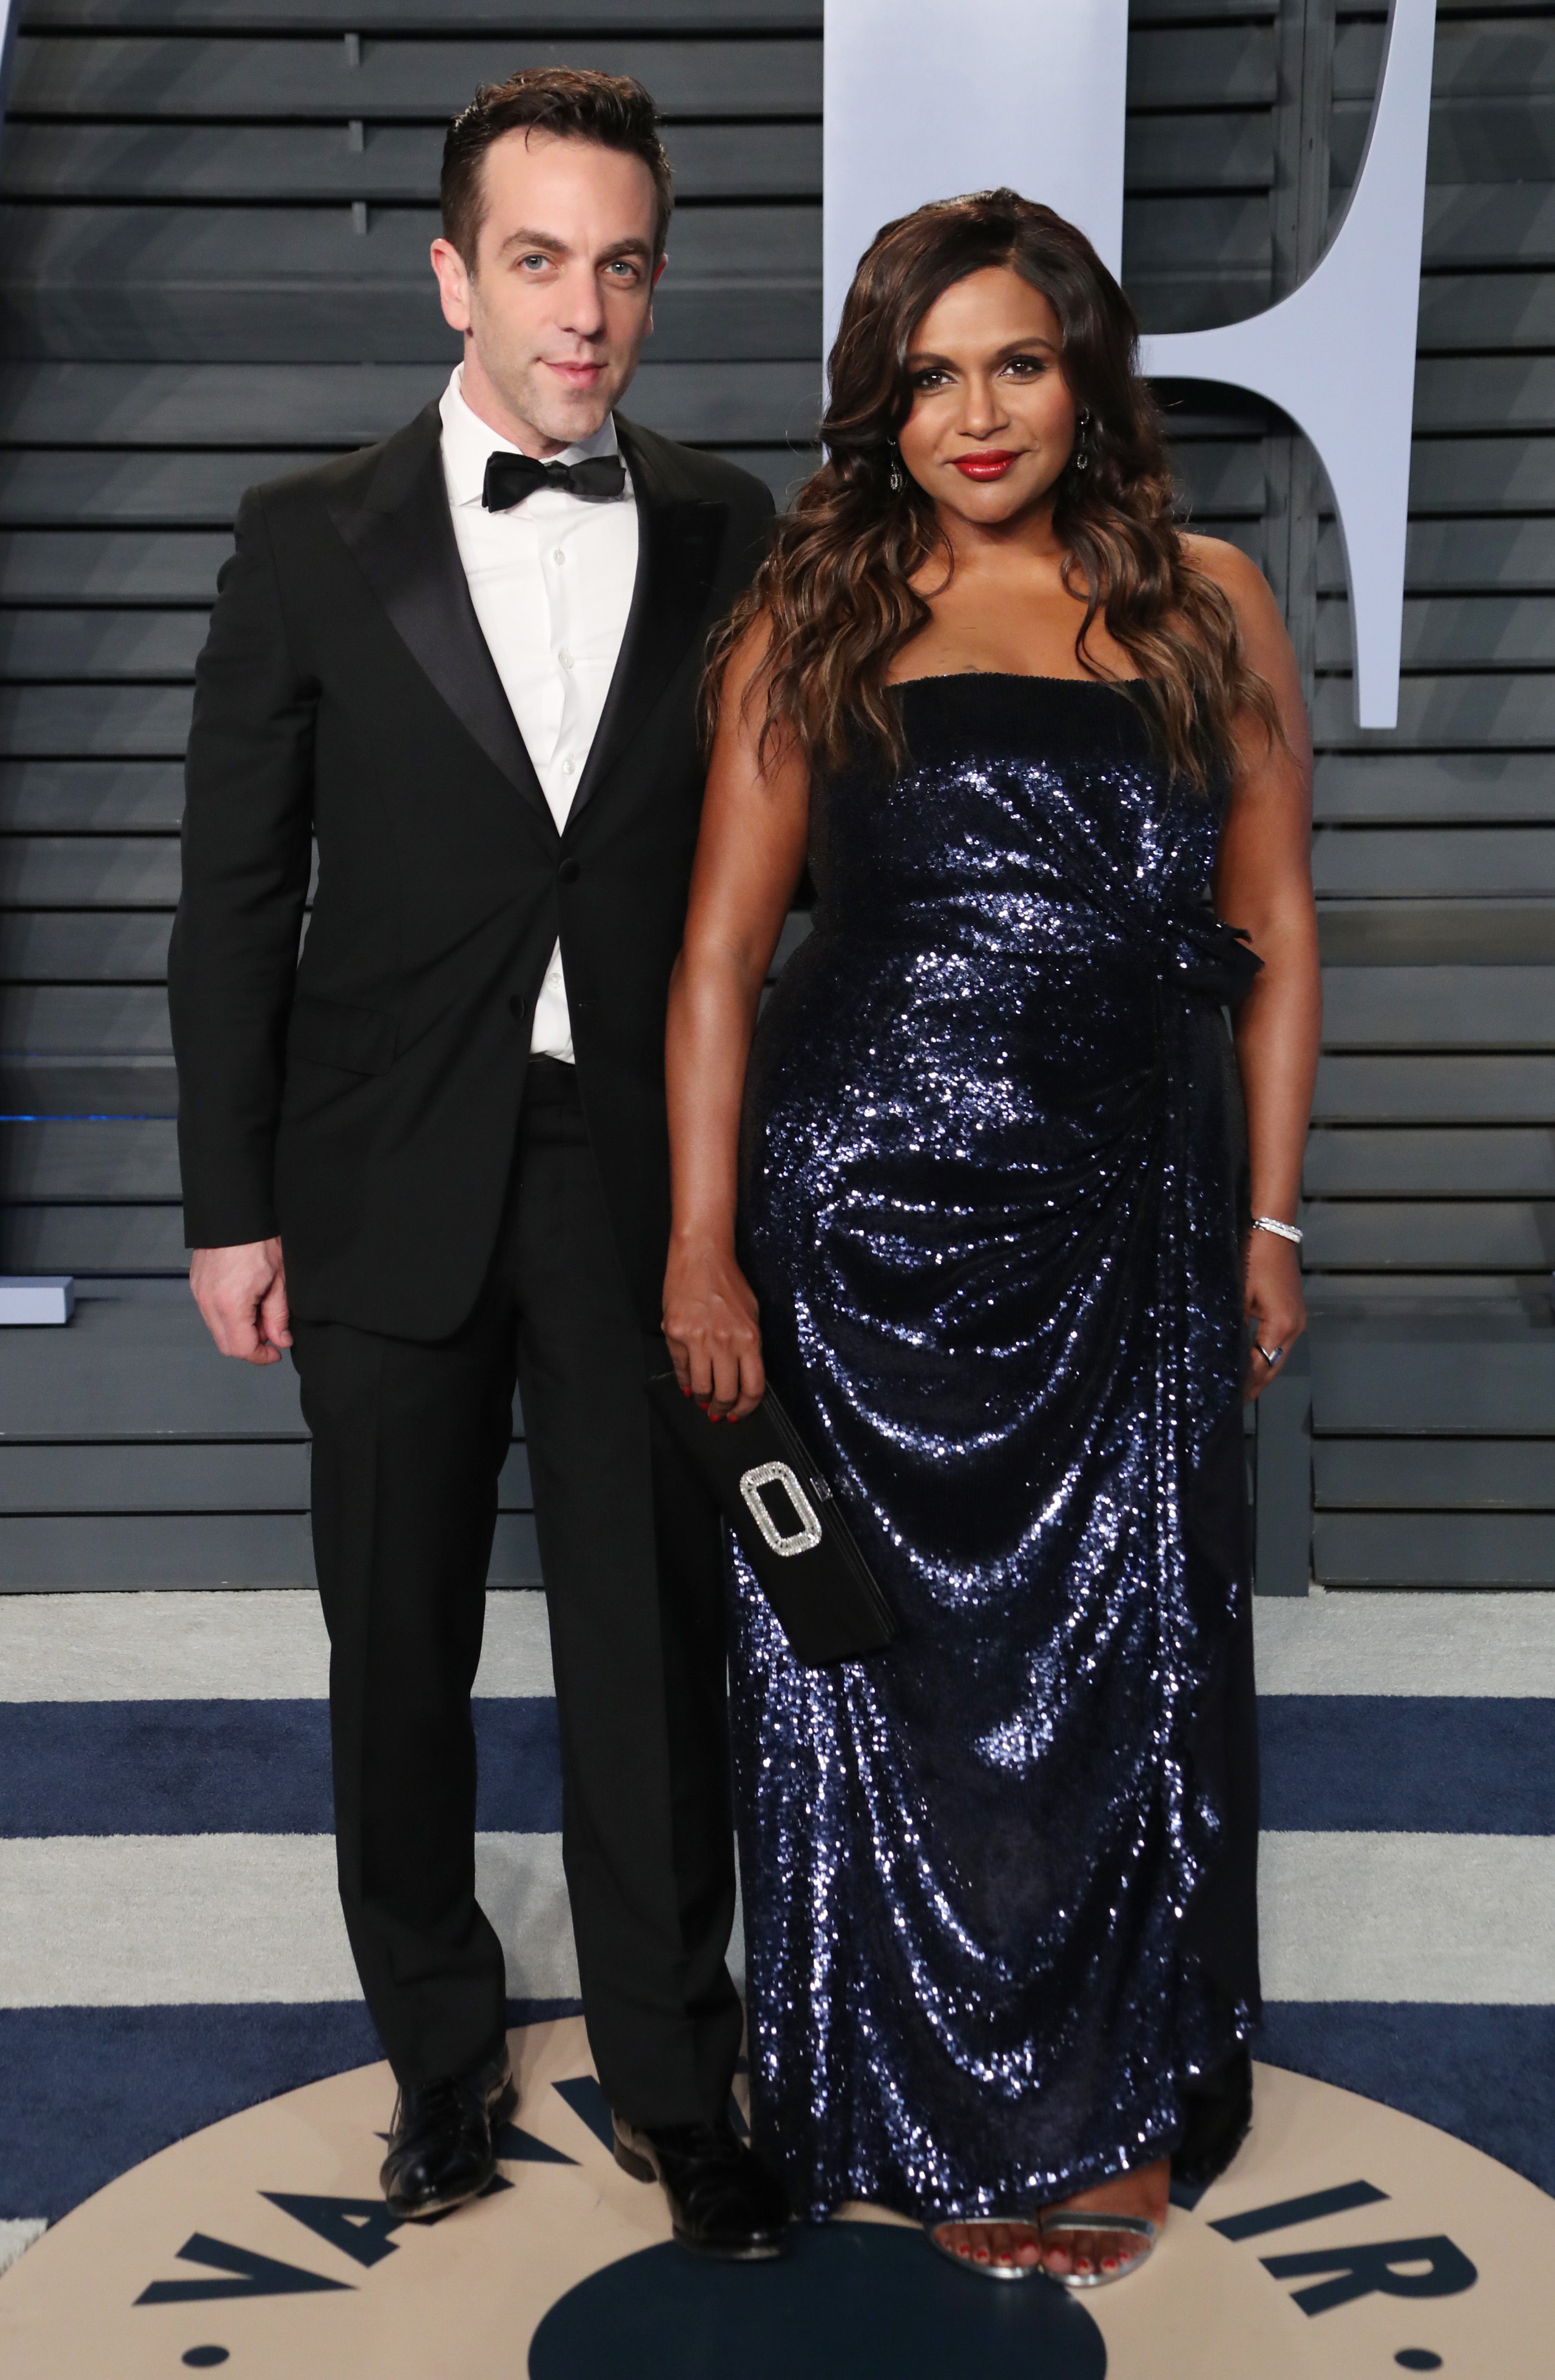 Exes Mindy Kaling and BJ Novak spark dating speculation